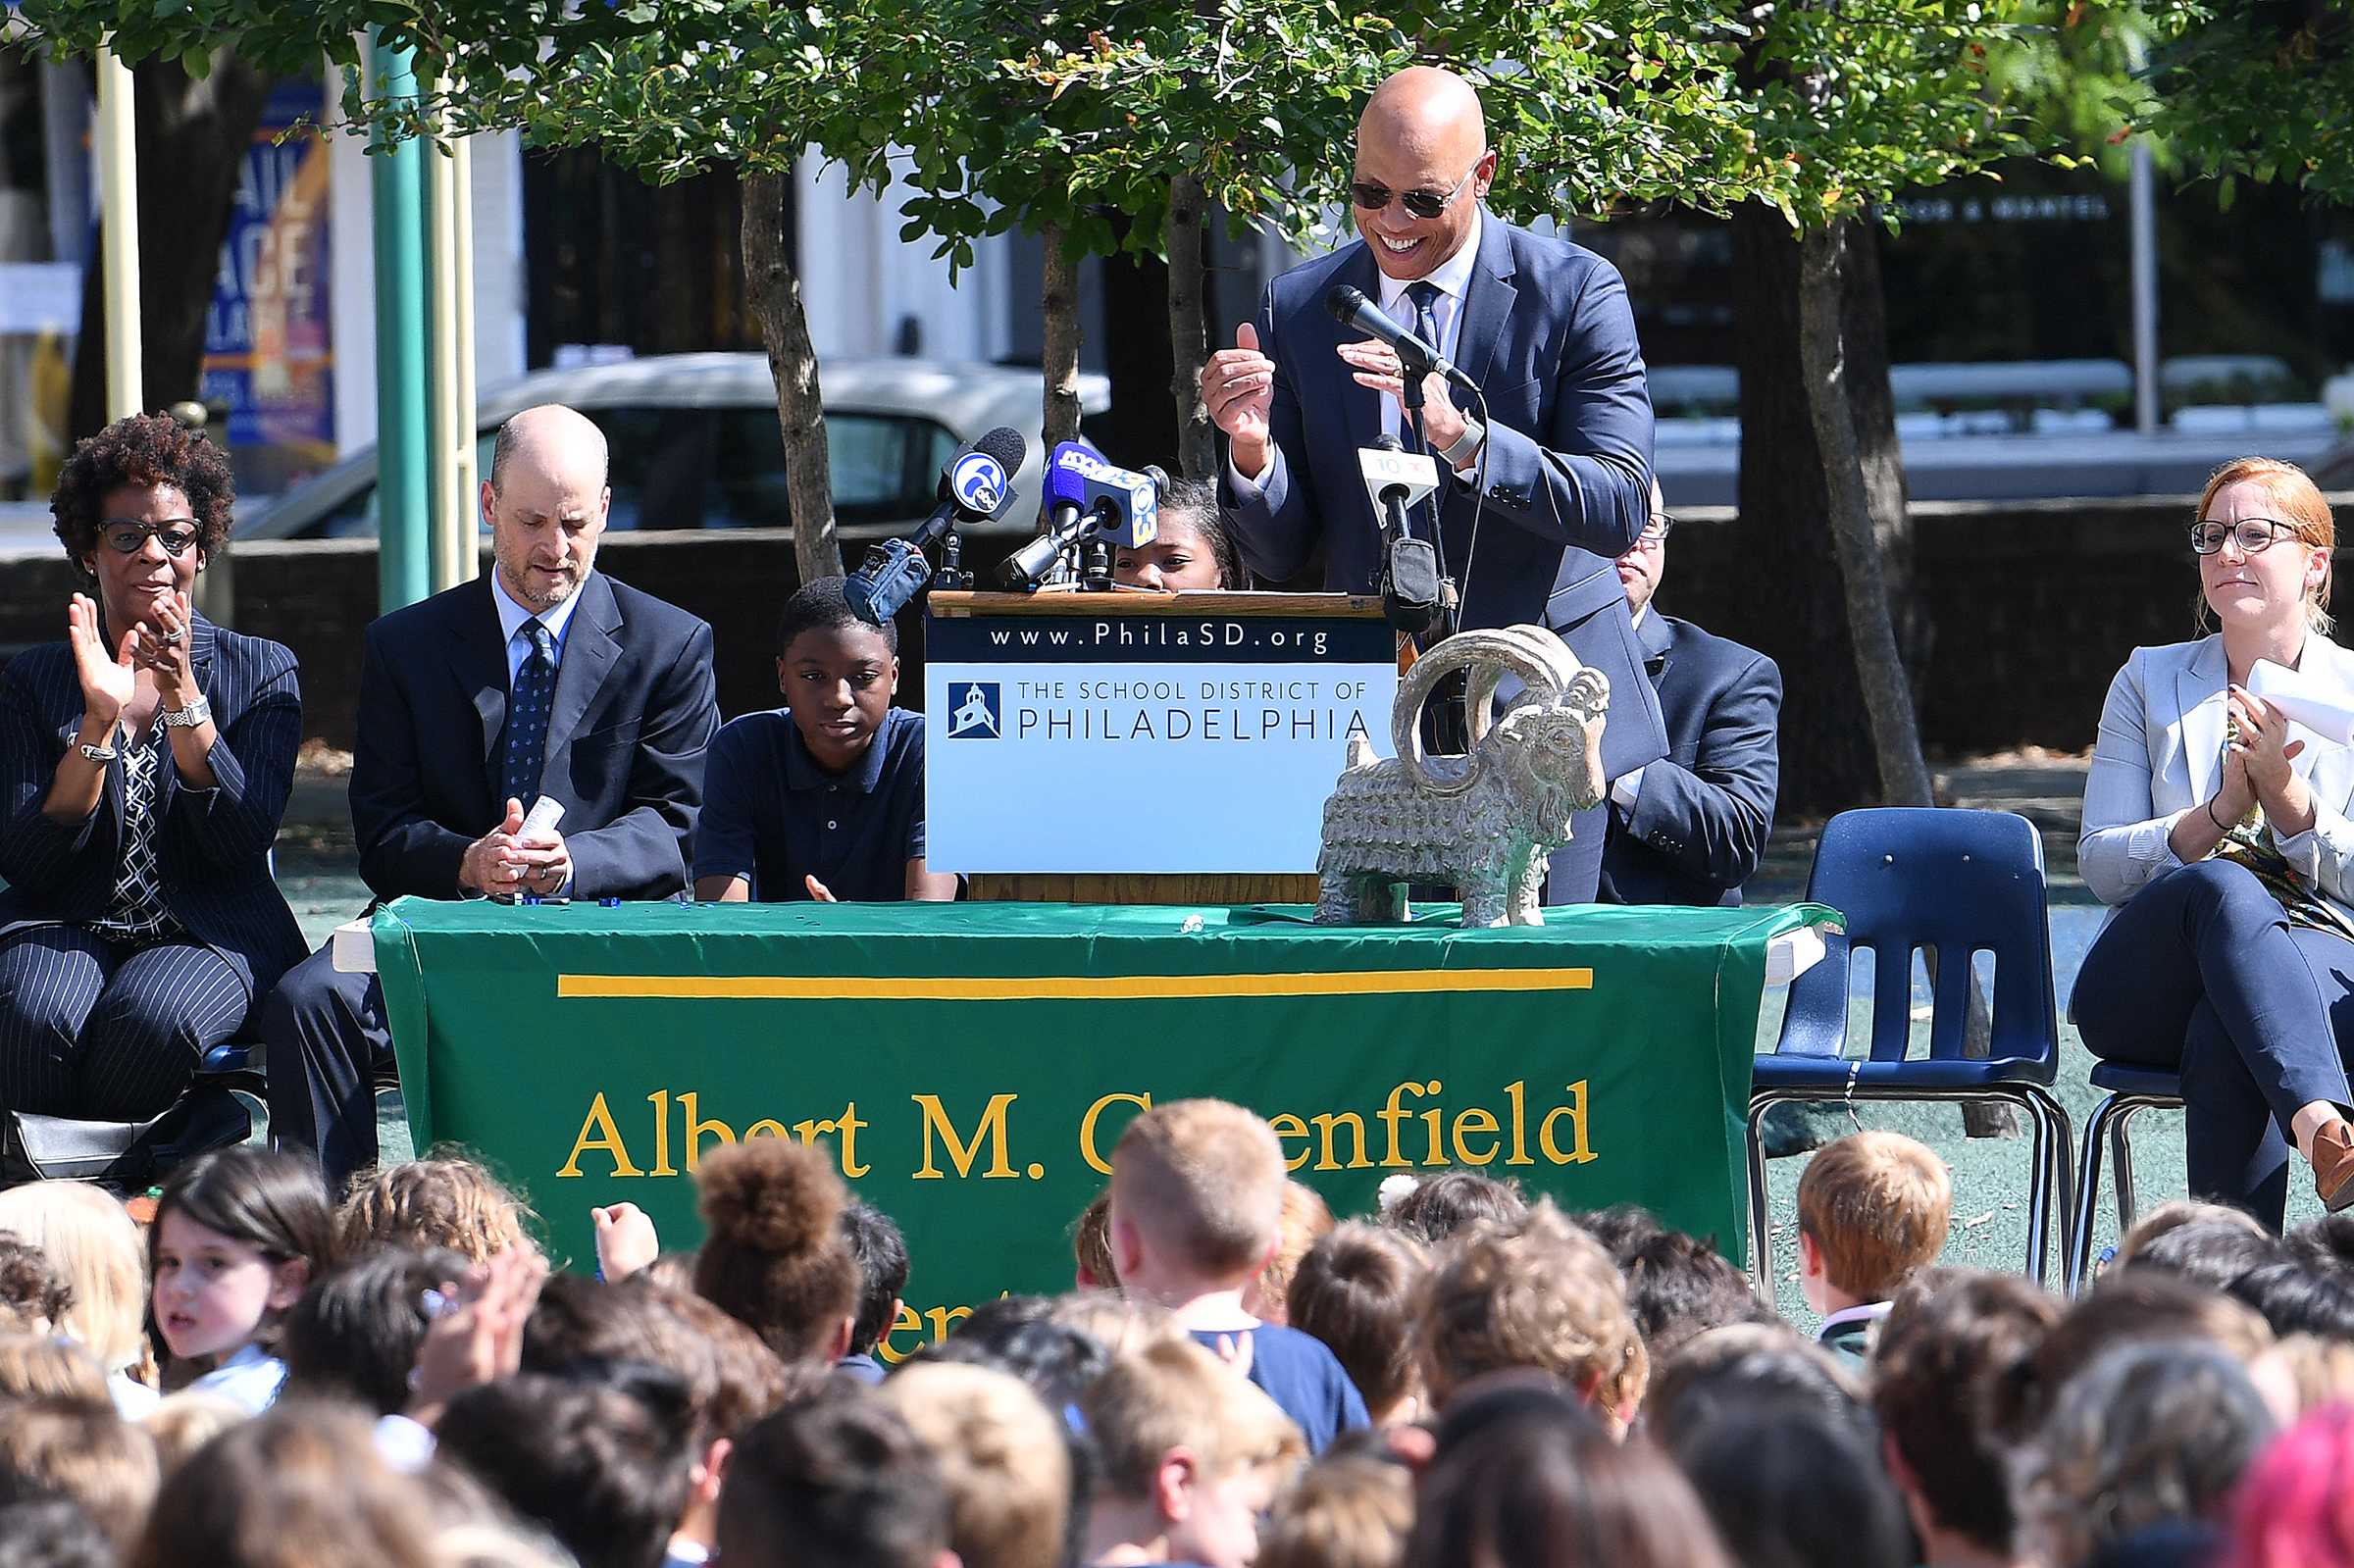 Superintendent William R. Hite Jr., speaks at the podium during a Blue Ribbon list celebration at the Greenfield Elementary School in Philadelphia.